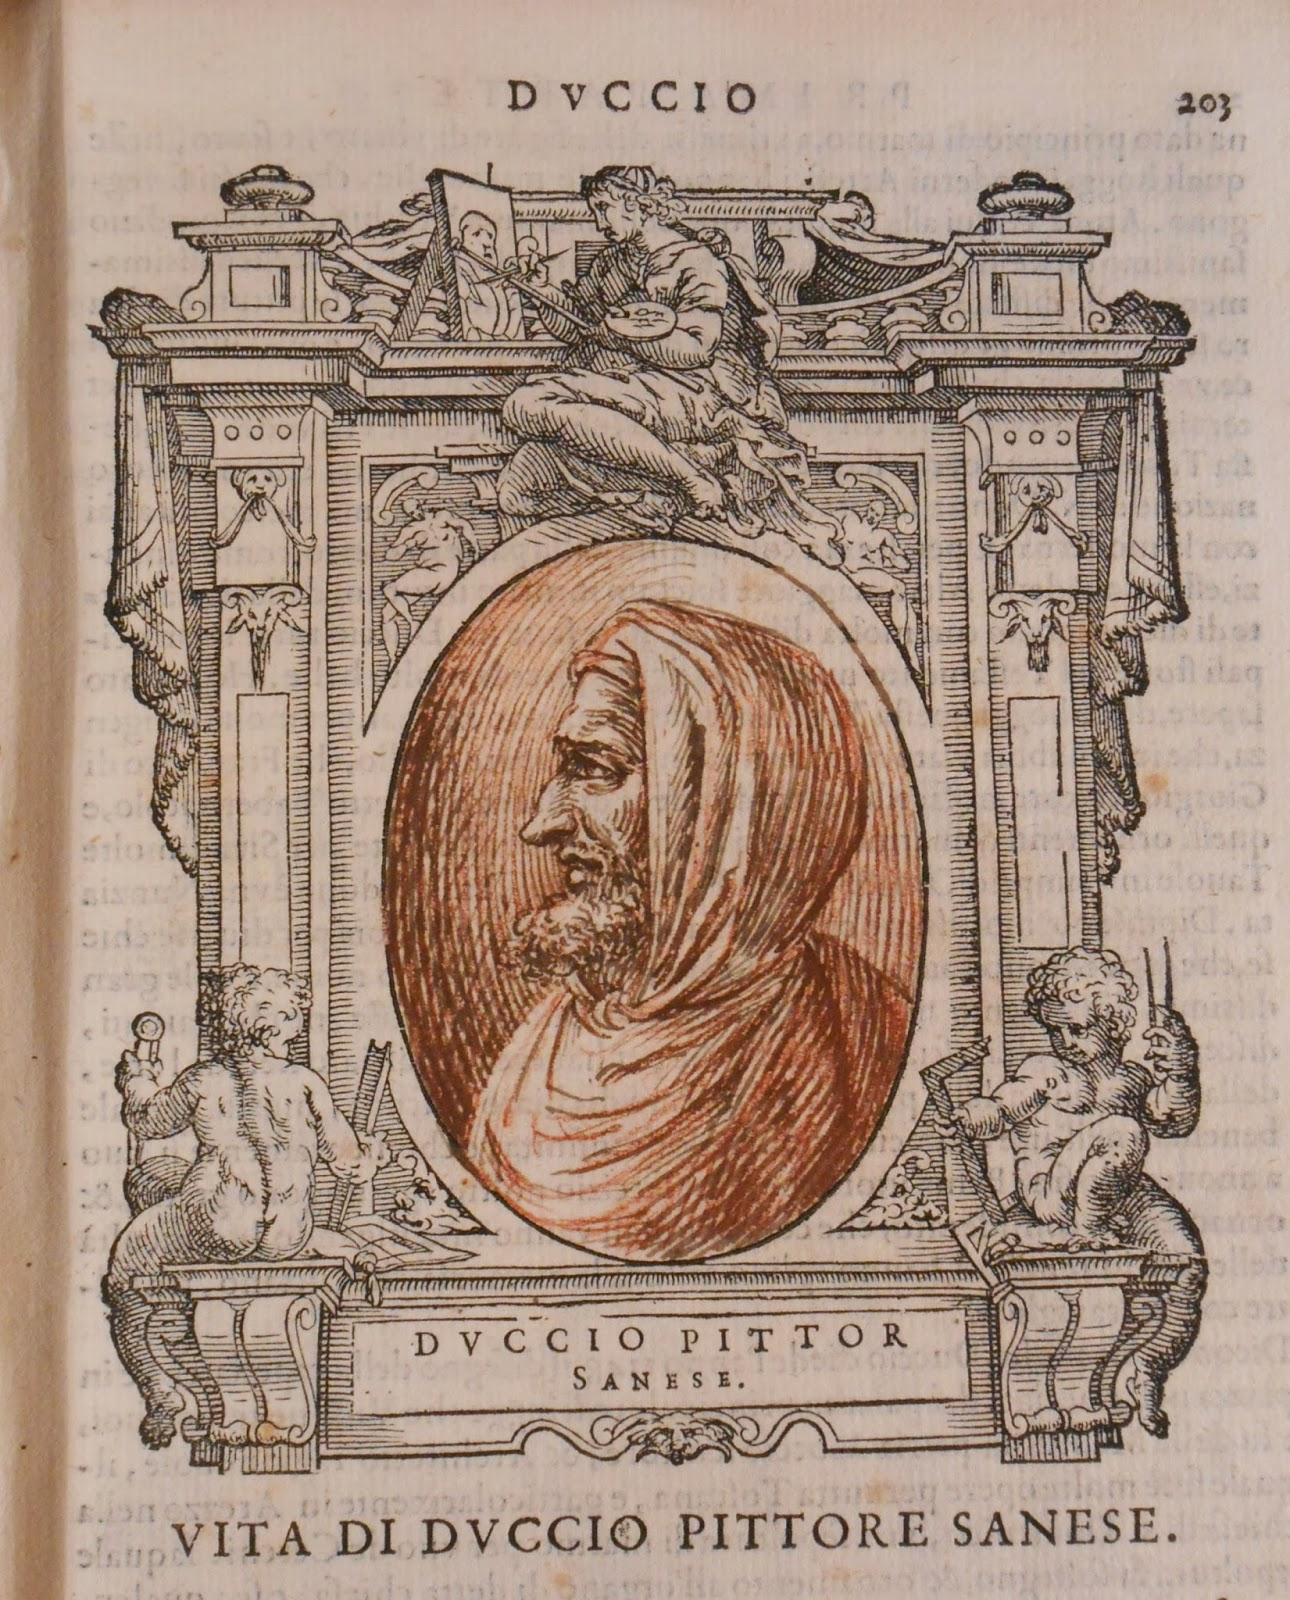 A medallion frame containing a pen sketch of a bearded man.